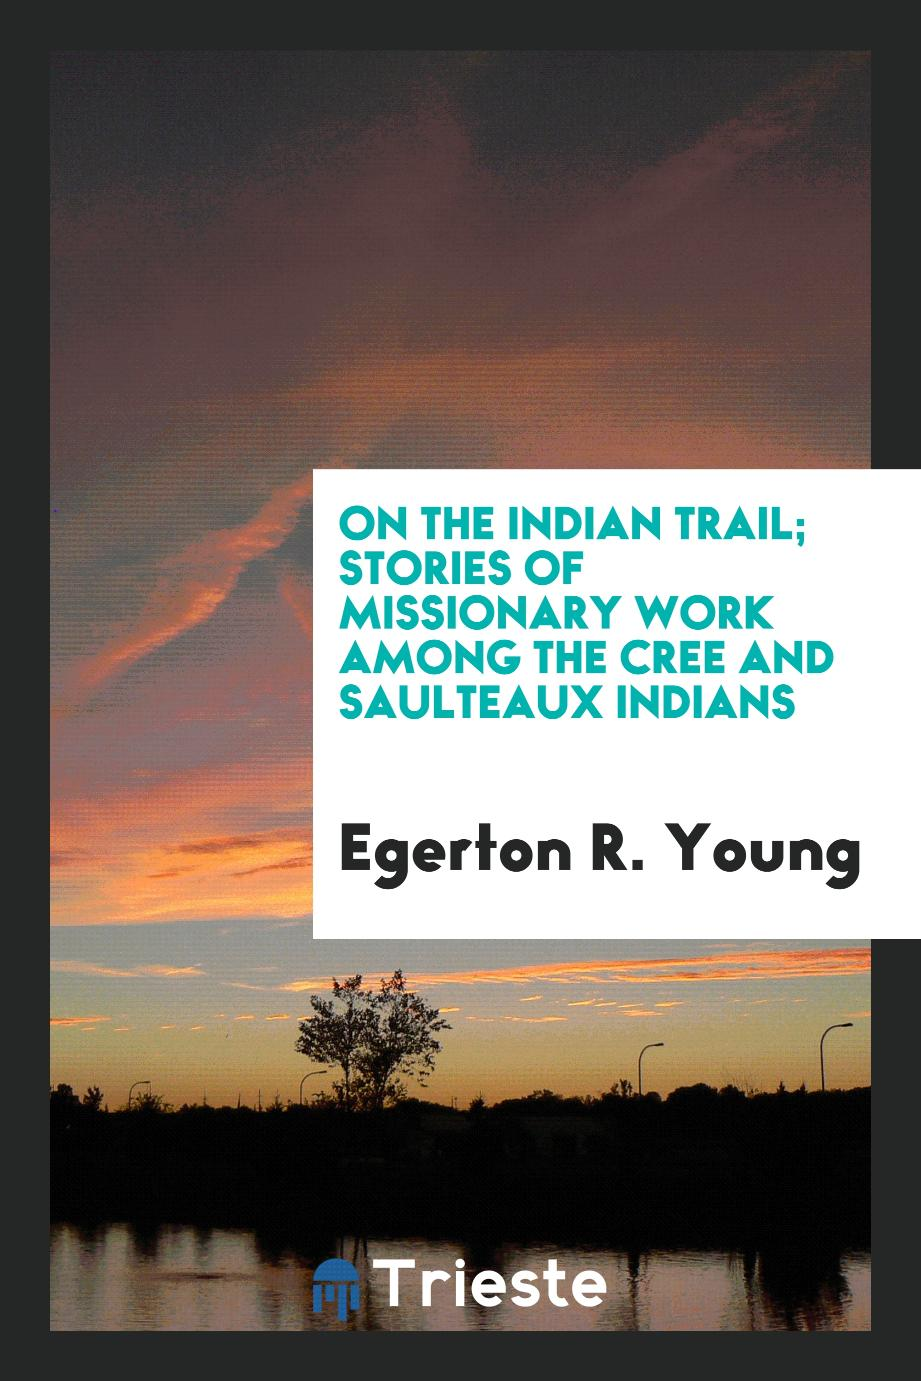 On the Indian trail; stories of missionary work among the Cree and Saulteaux Indians